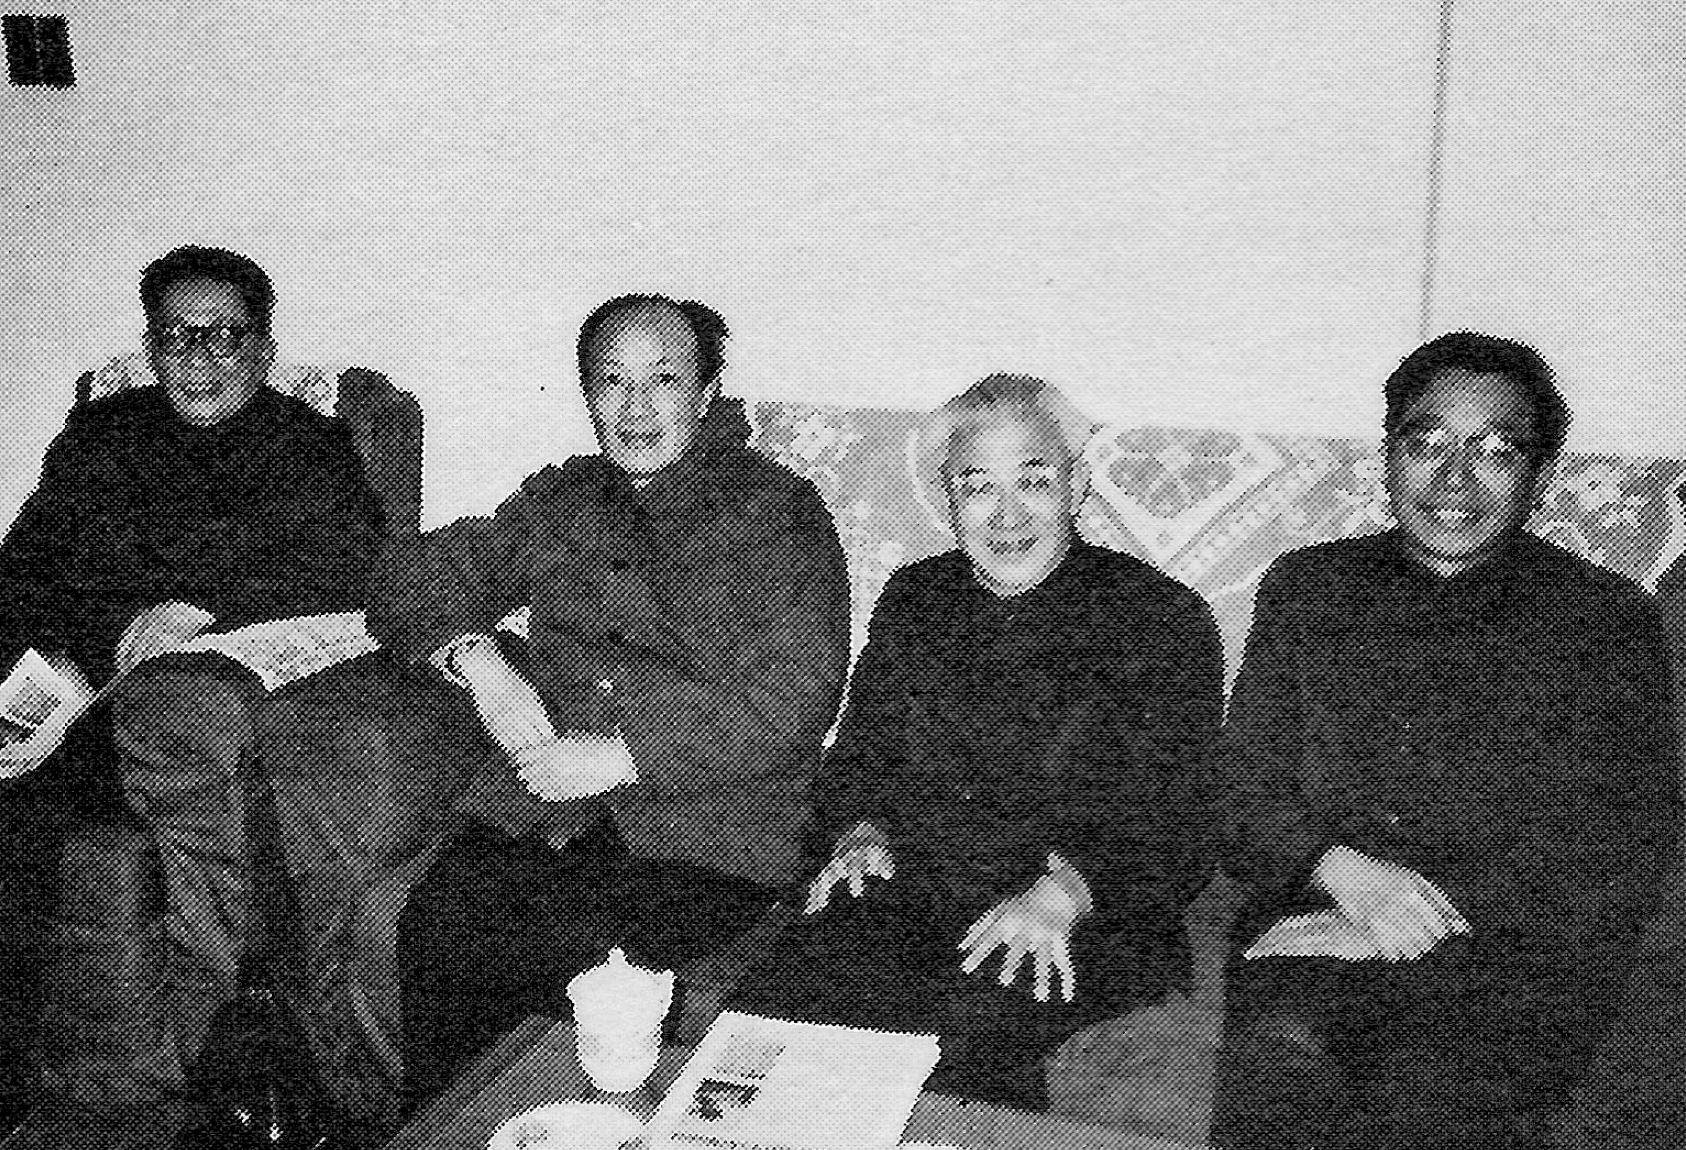 The Center plans to expand its programs to include translation and publication. Seated here are leaders in the field of publication: Wang Ziye (second from right), deputy director of the Chinese National Publishing Administration, and left to right: Wang Heng of the Chinese National Publishing Company, Tu An of People's Literature Publishing tlouse, and Shen Changwen of People's Publishing House.